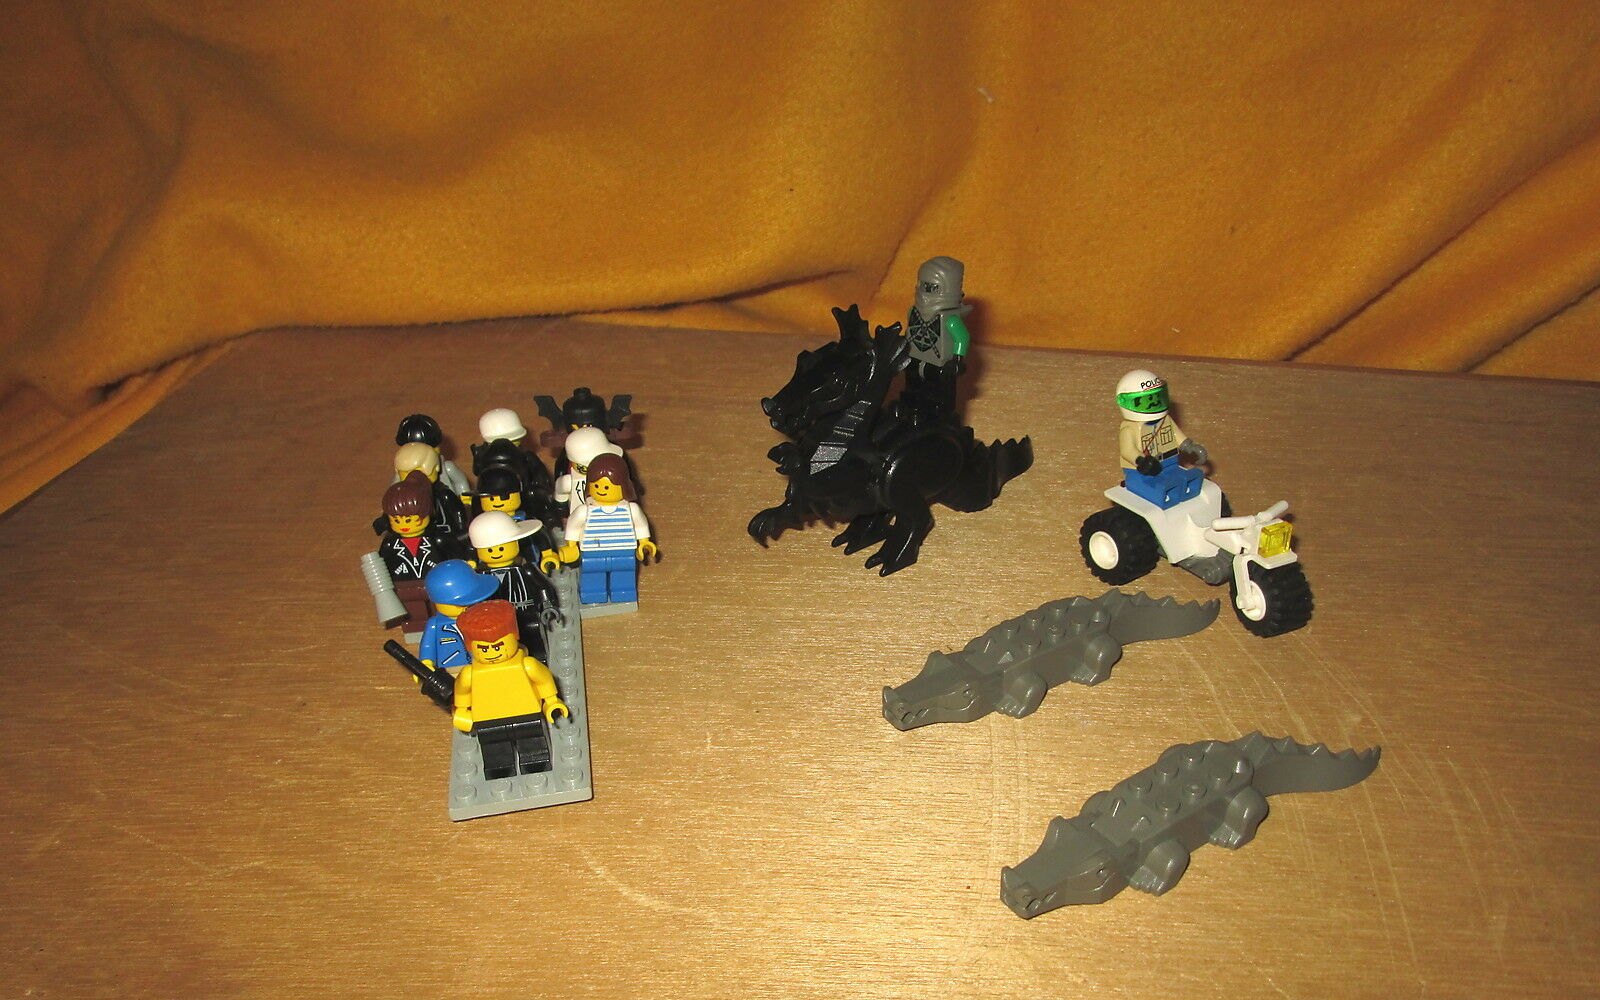 15  Legos Mini Figures 1 Dragon 2 Alligators Excellent Condition